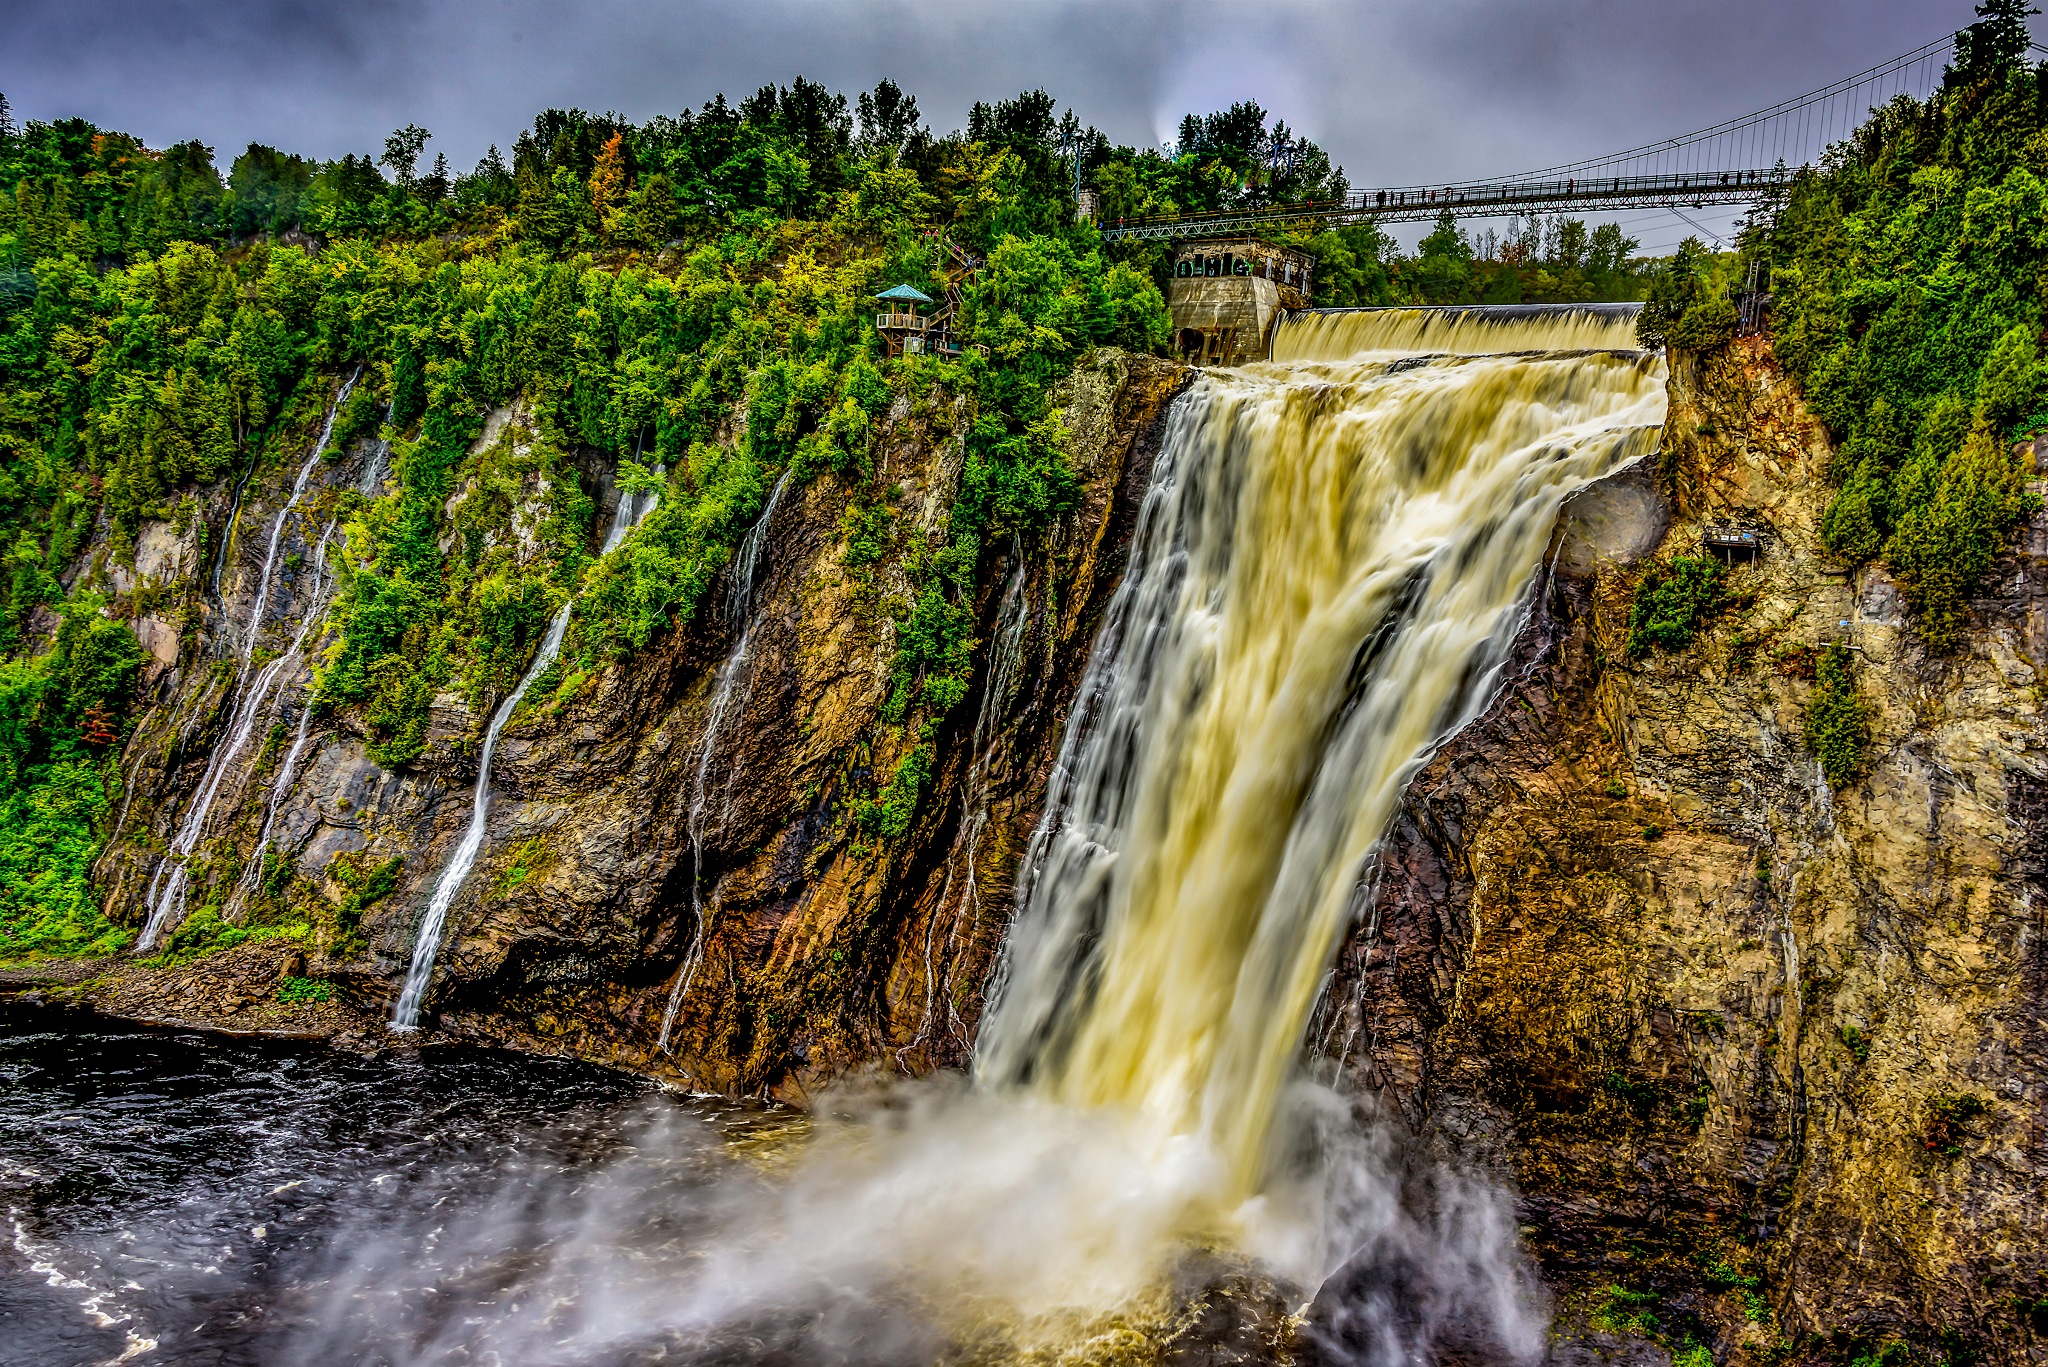 Mount Morency by Ed Abano